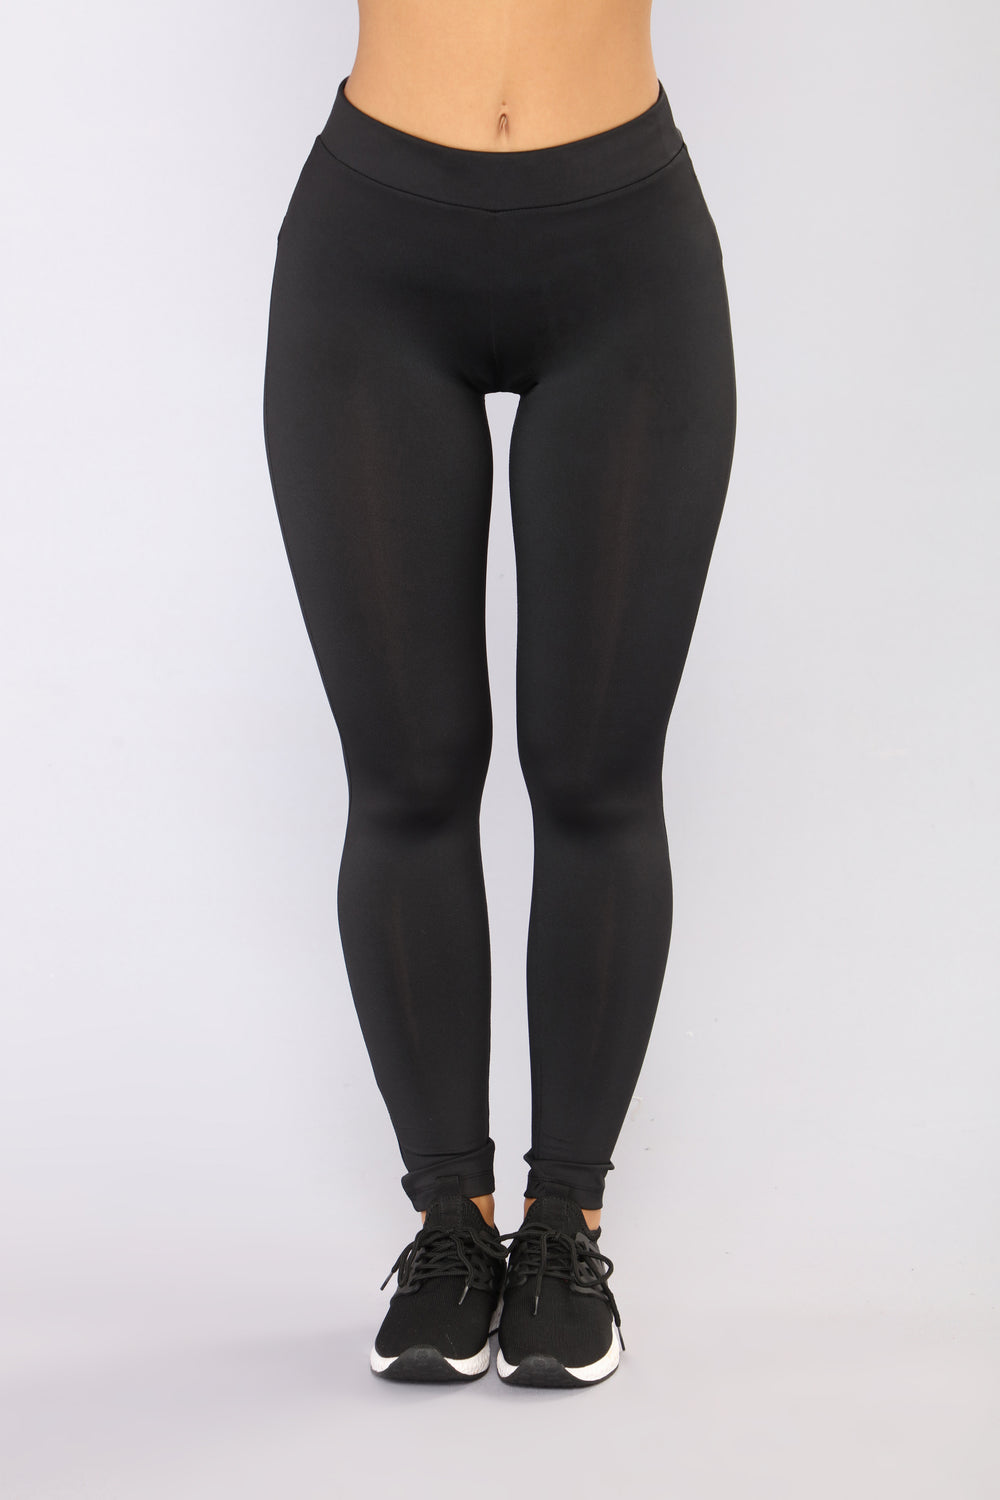 Bounce It Booty Shaping Active Leggings - Black